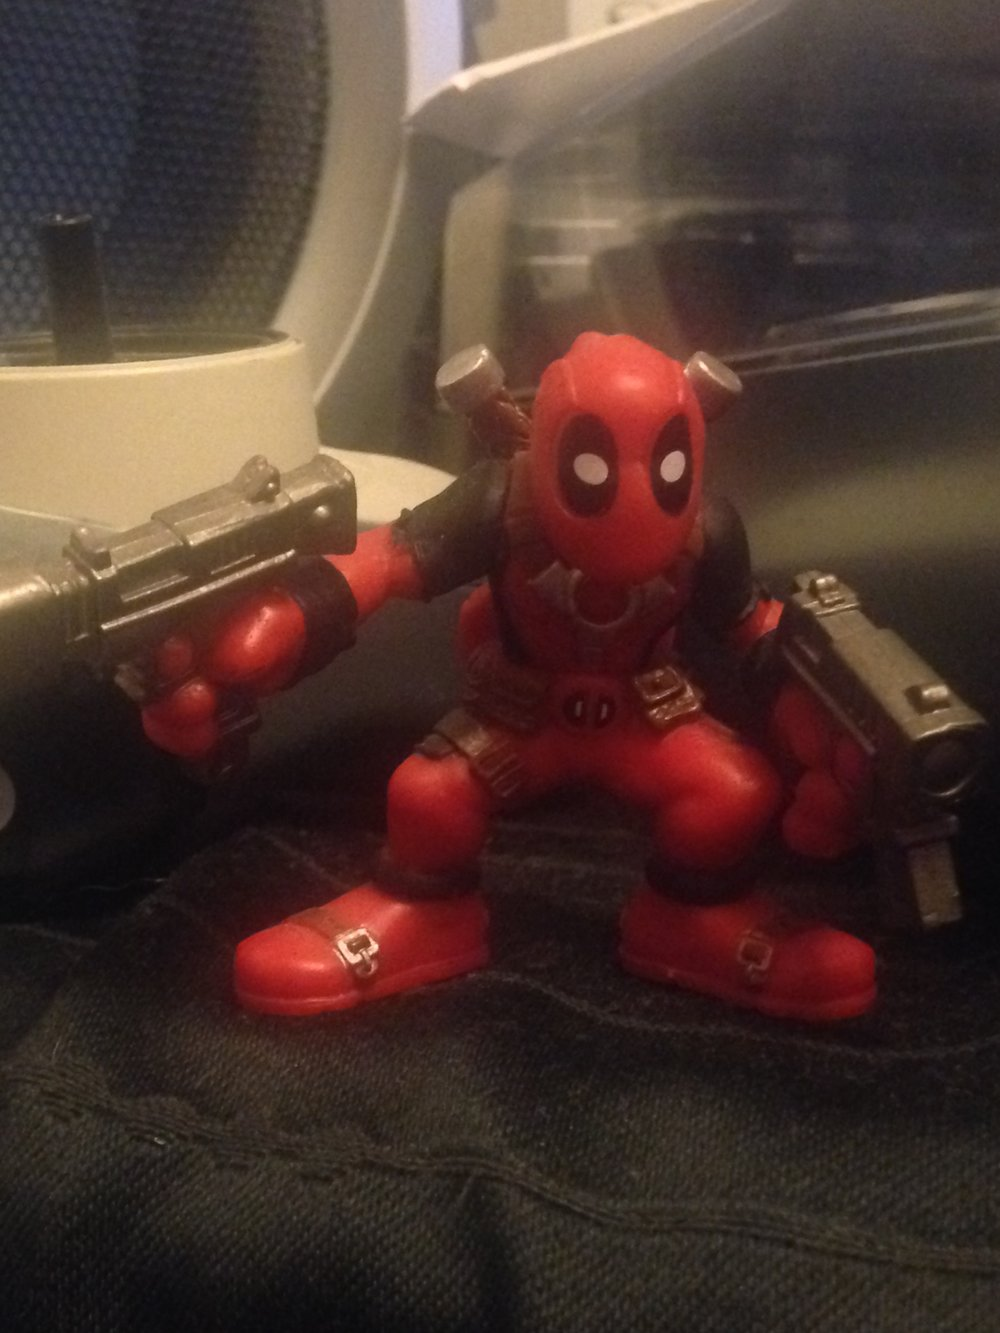 Finding Deadpool in a discount bin...those were the days!